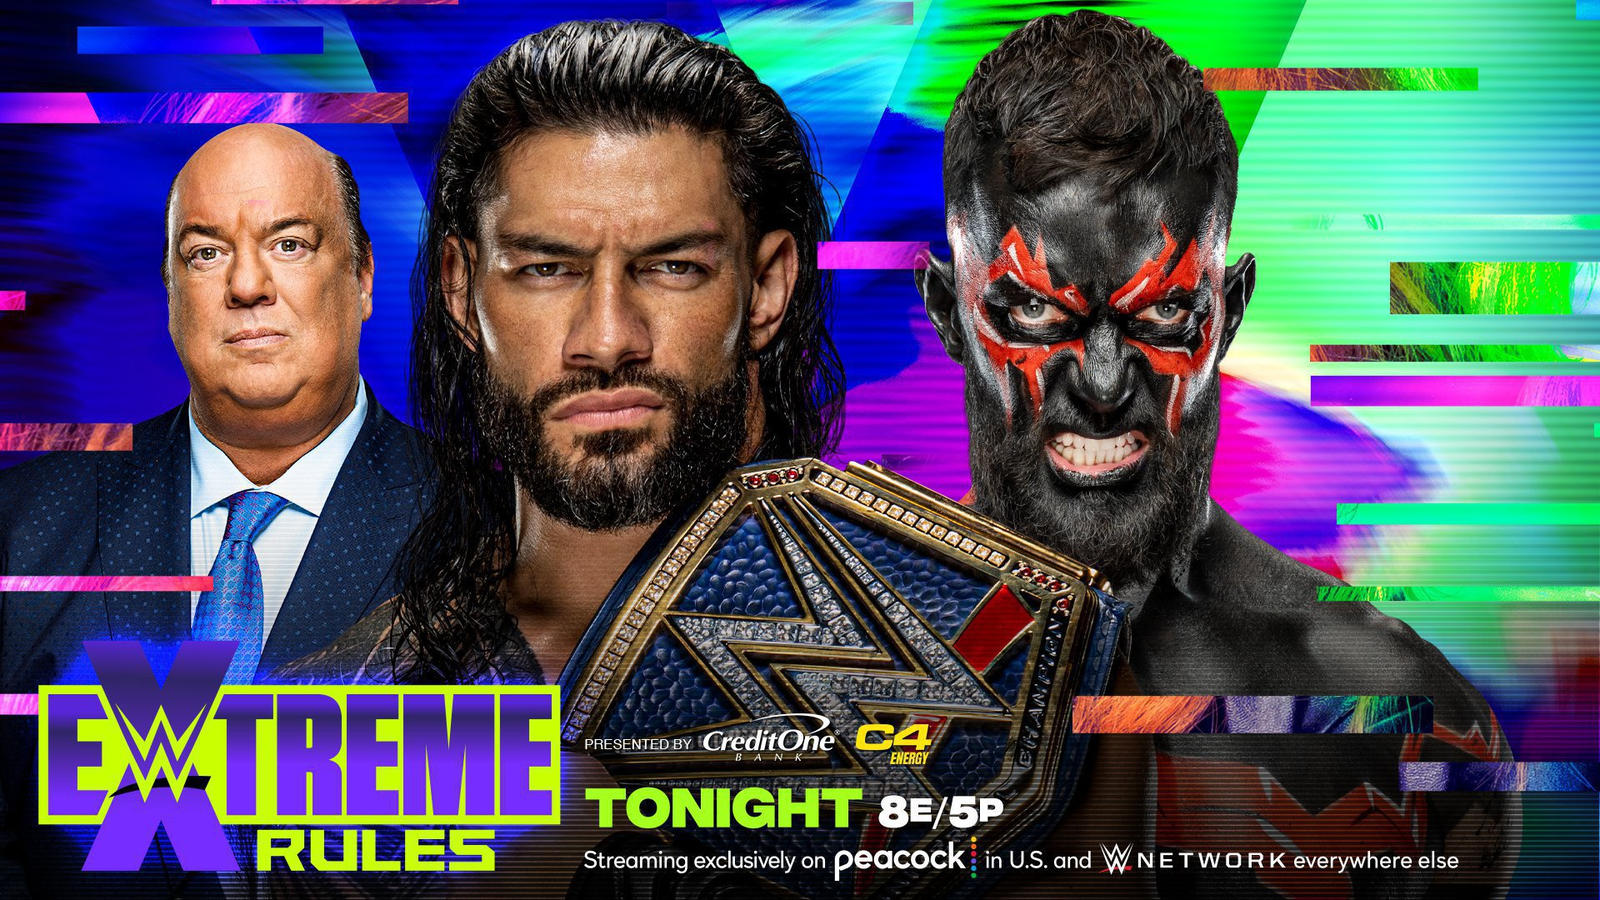 WWE Extreme Rules Results - September 26, 2021